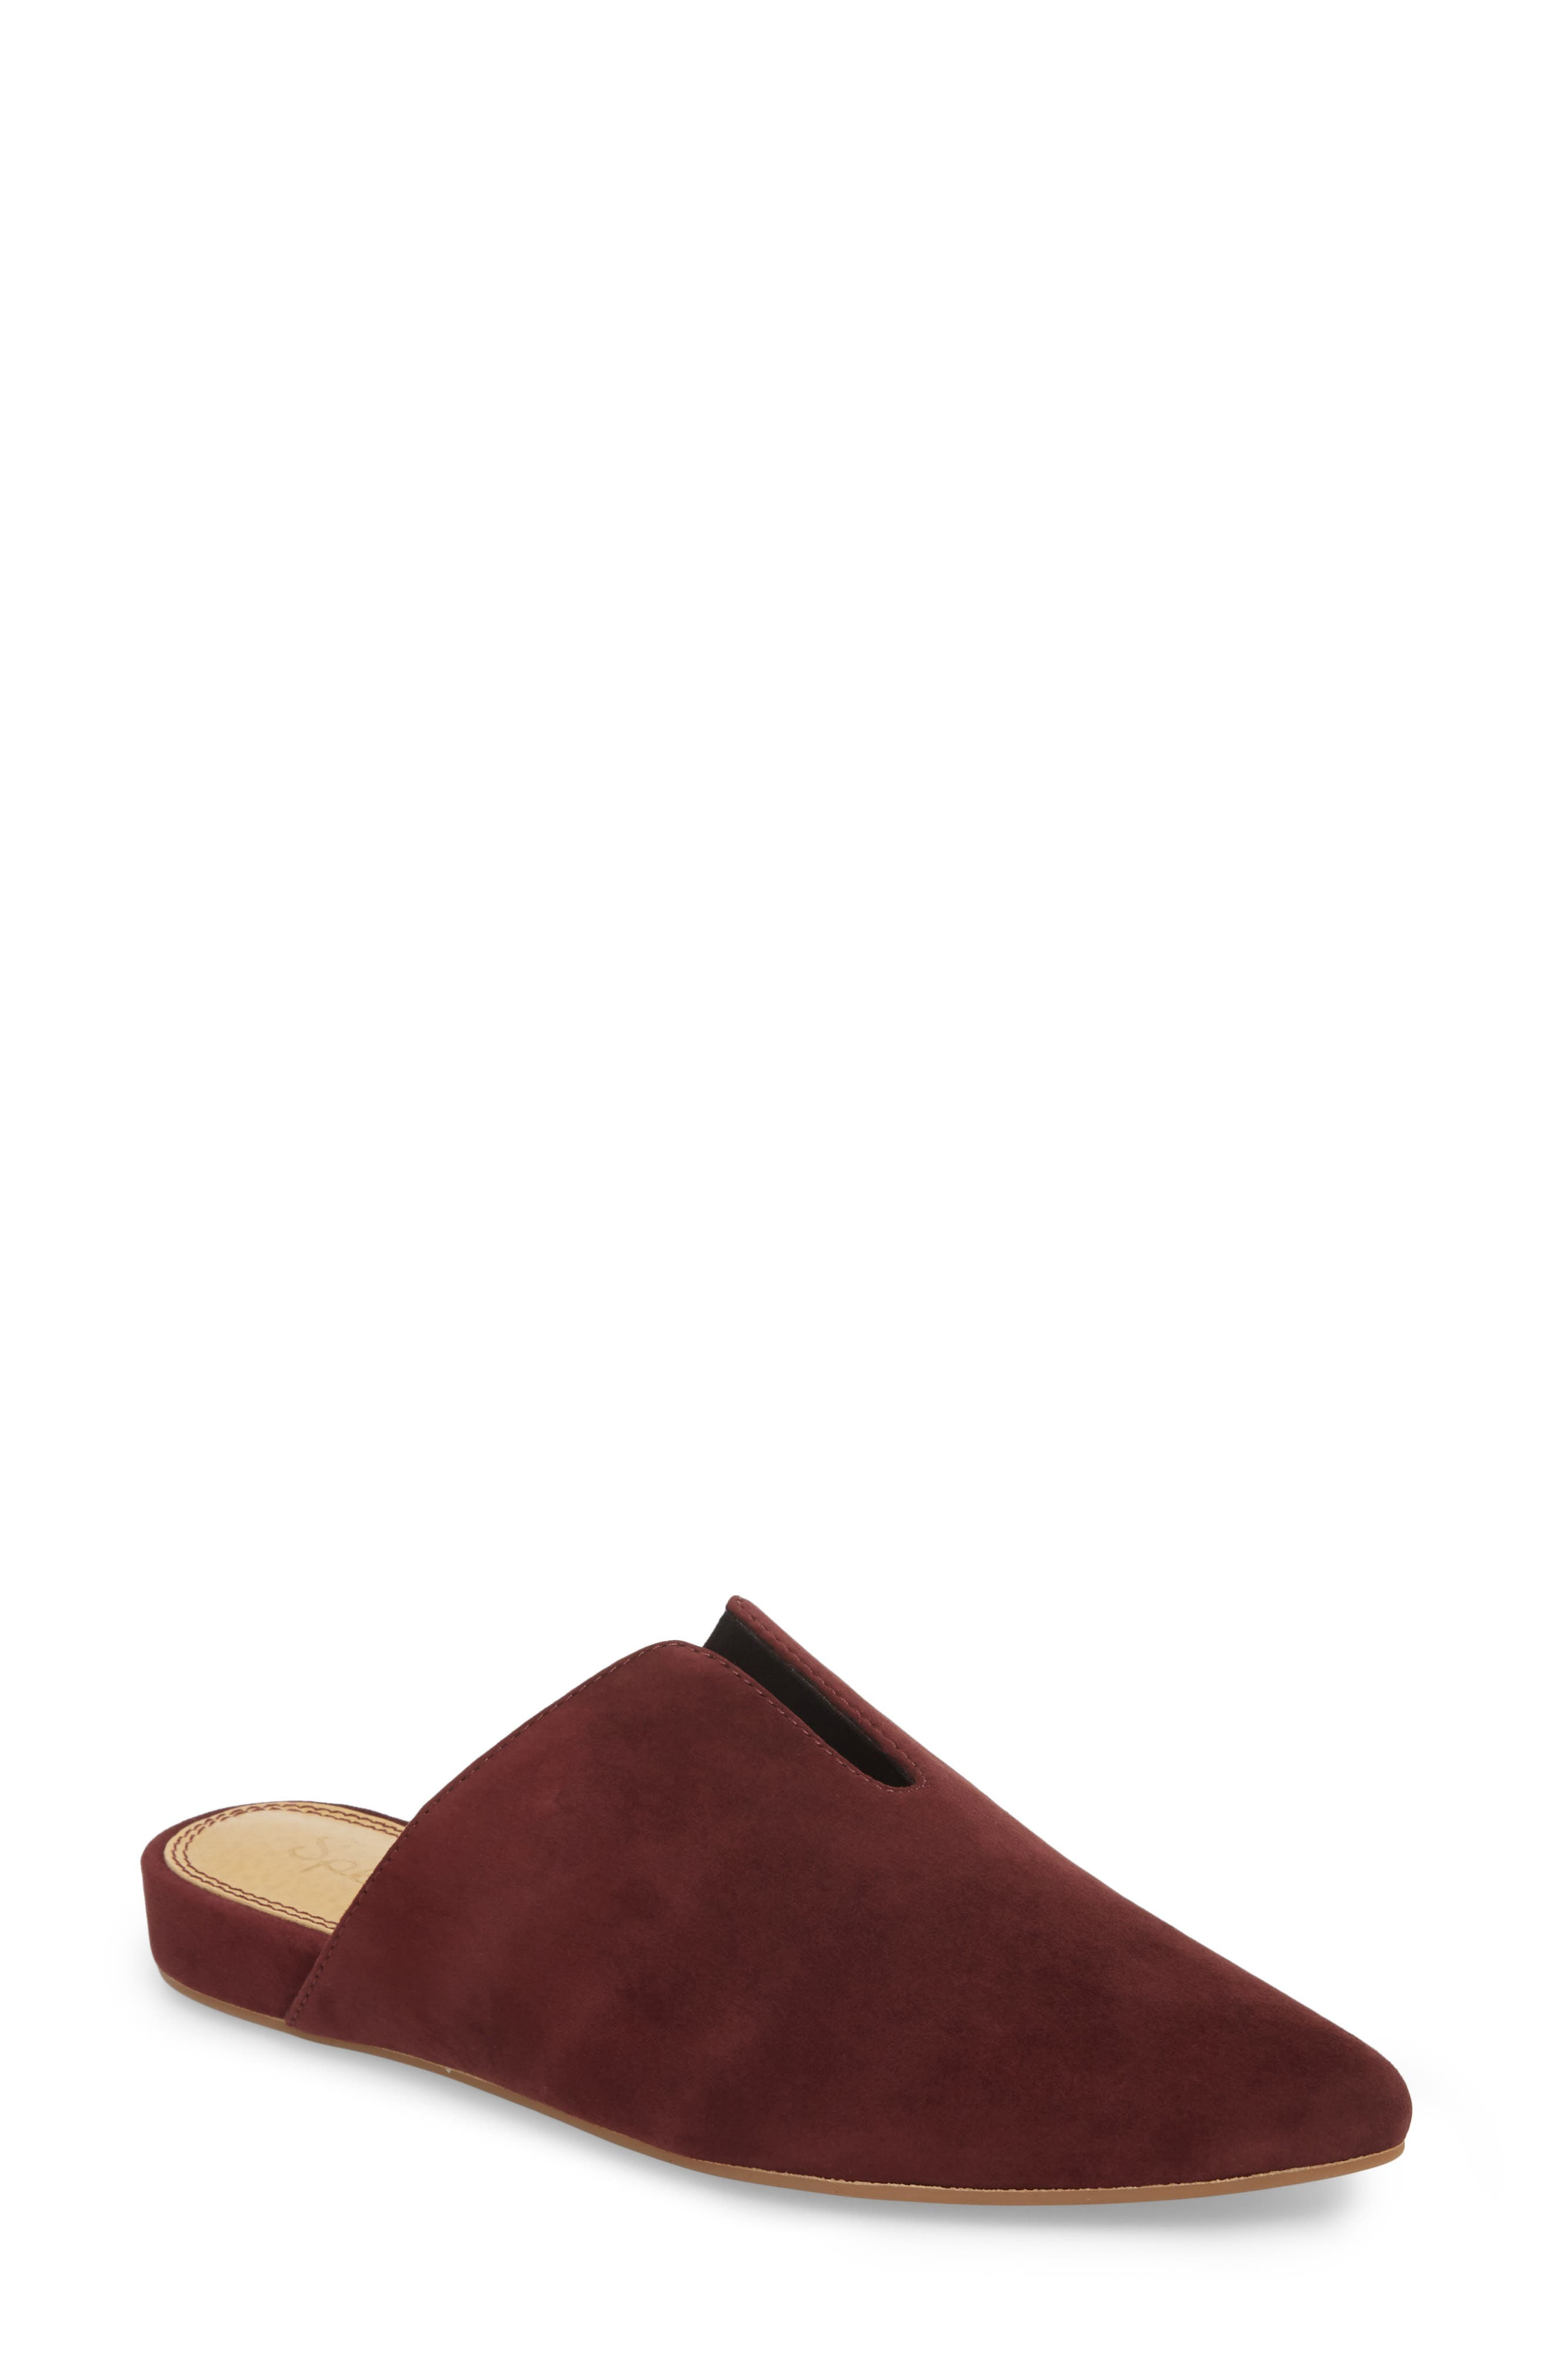 Nieves Mule,                             Main thumbnail 1, color,                             DEEP PLUM SUEDE